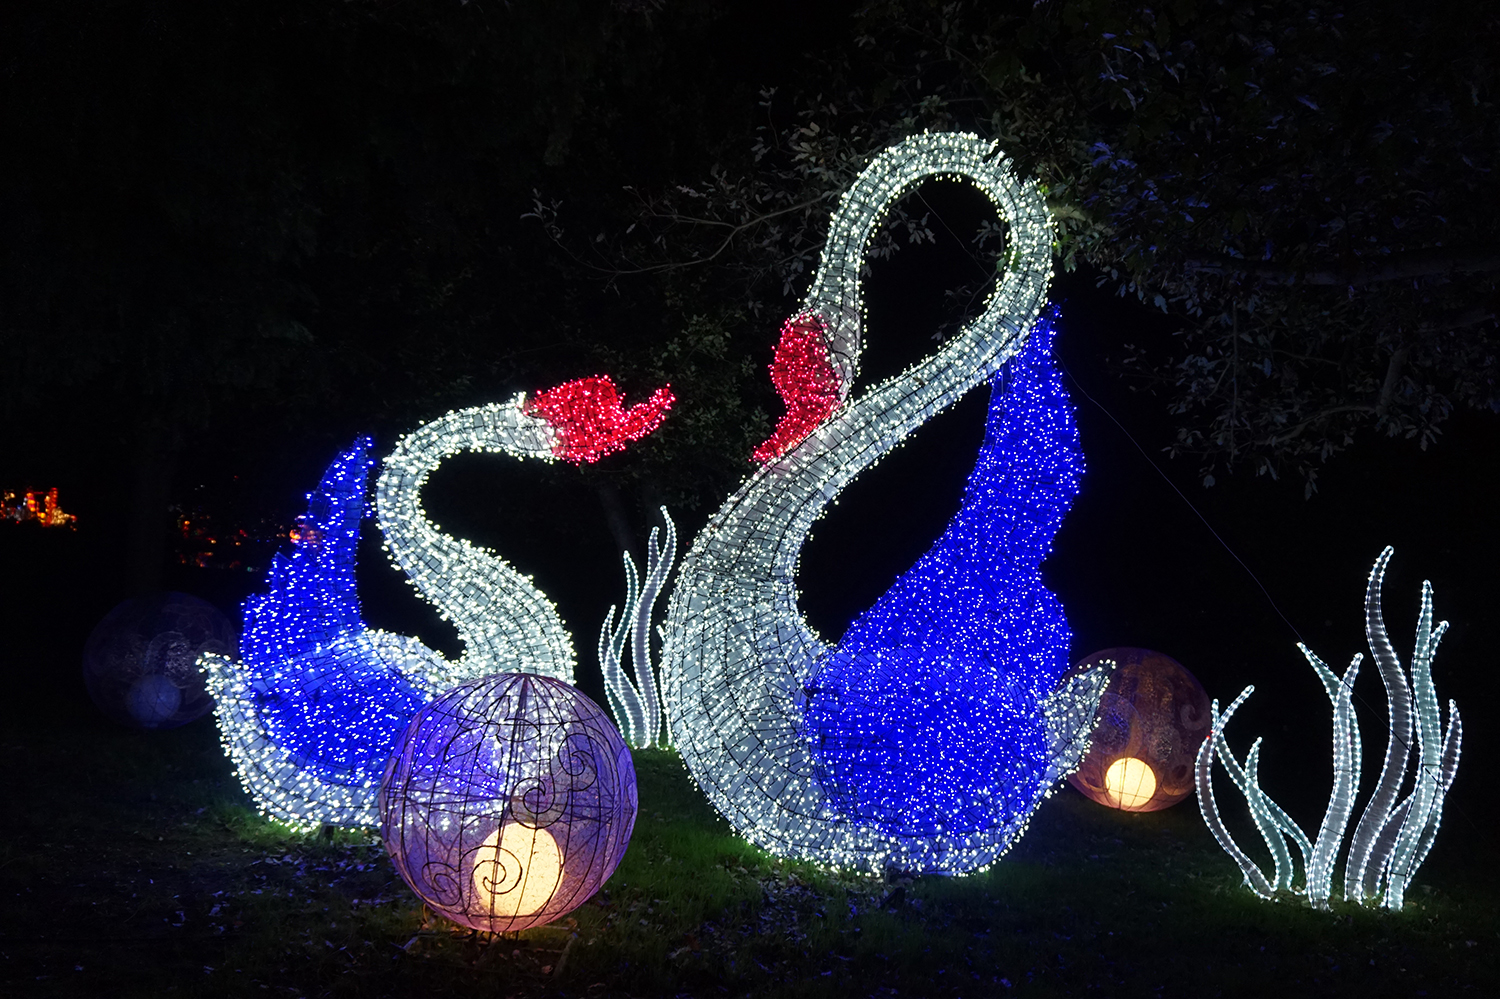 magical_lantern_festival_chiswick_16